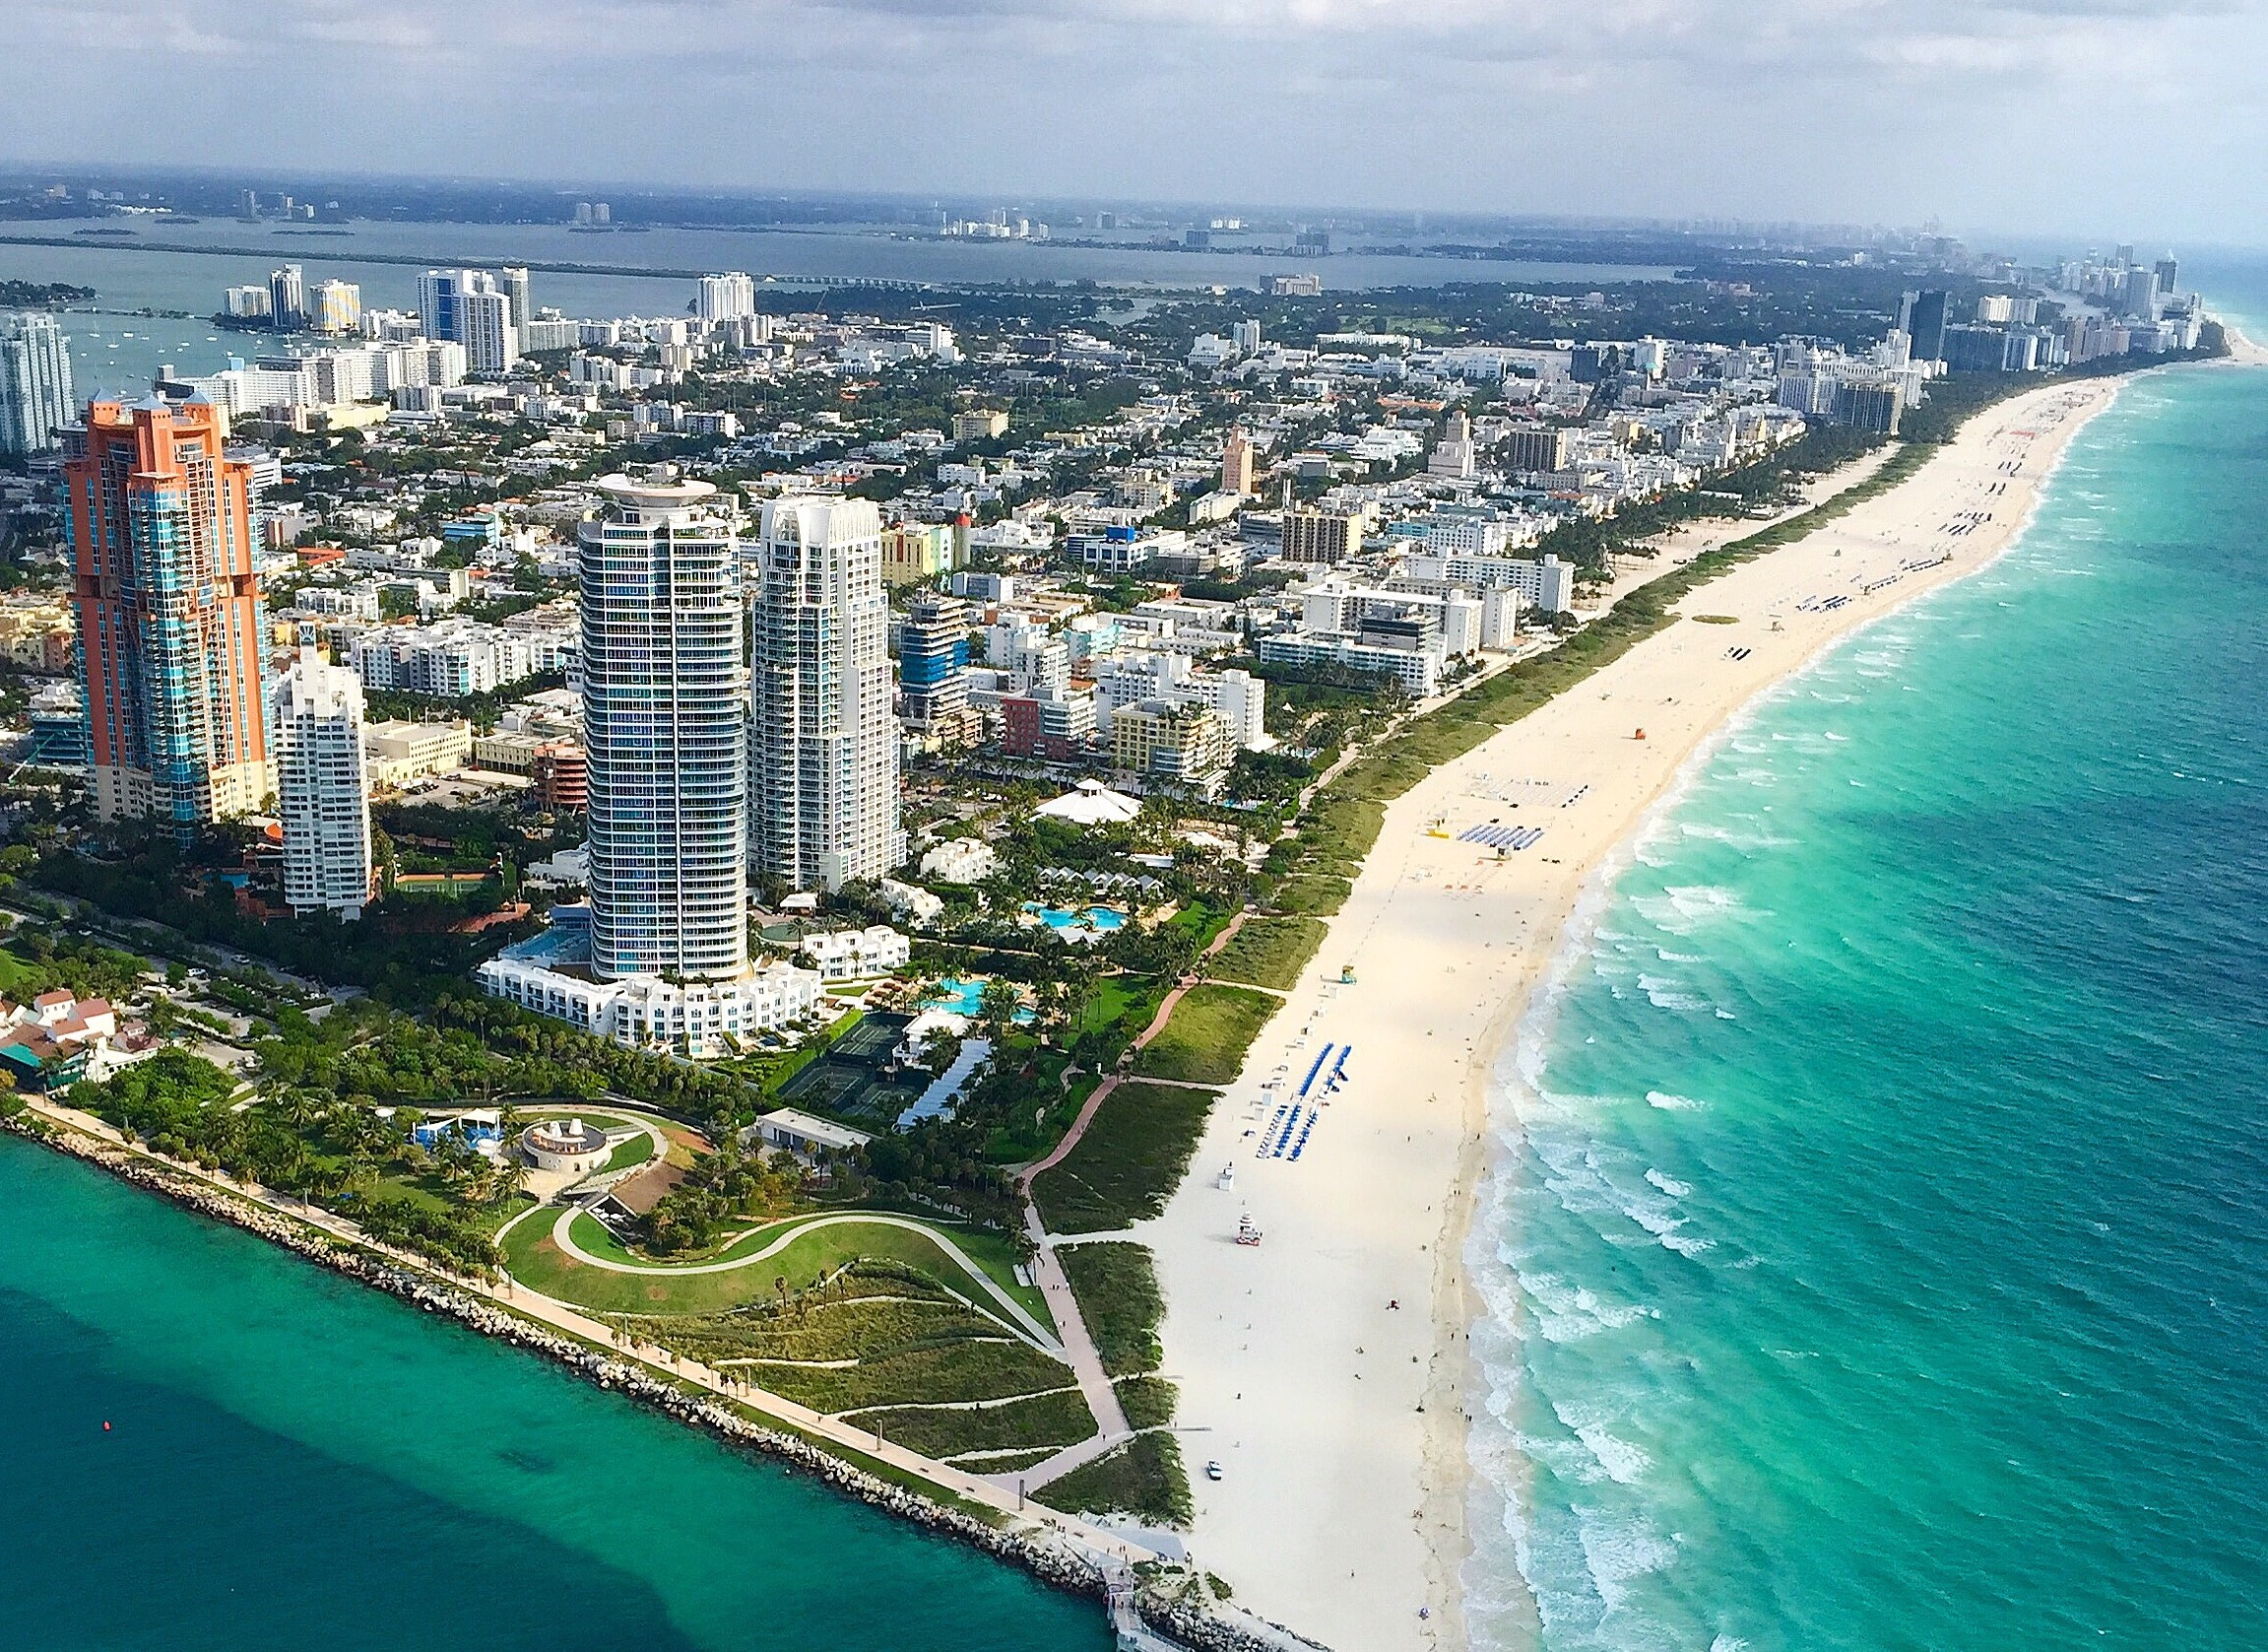 Aerial view of Miami, FL with buildings and green waterfront.